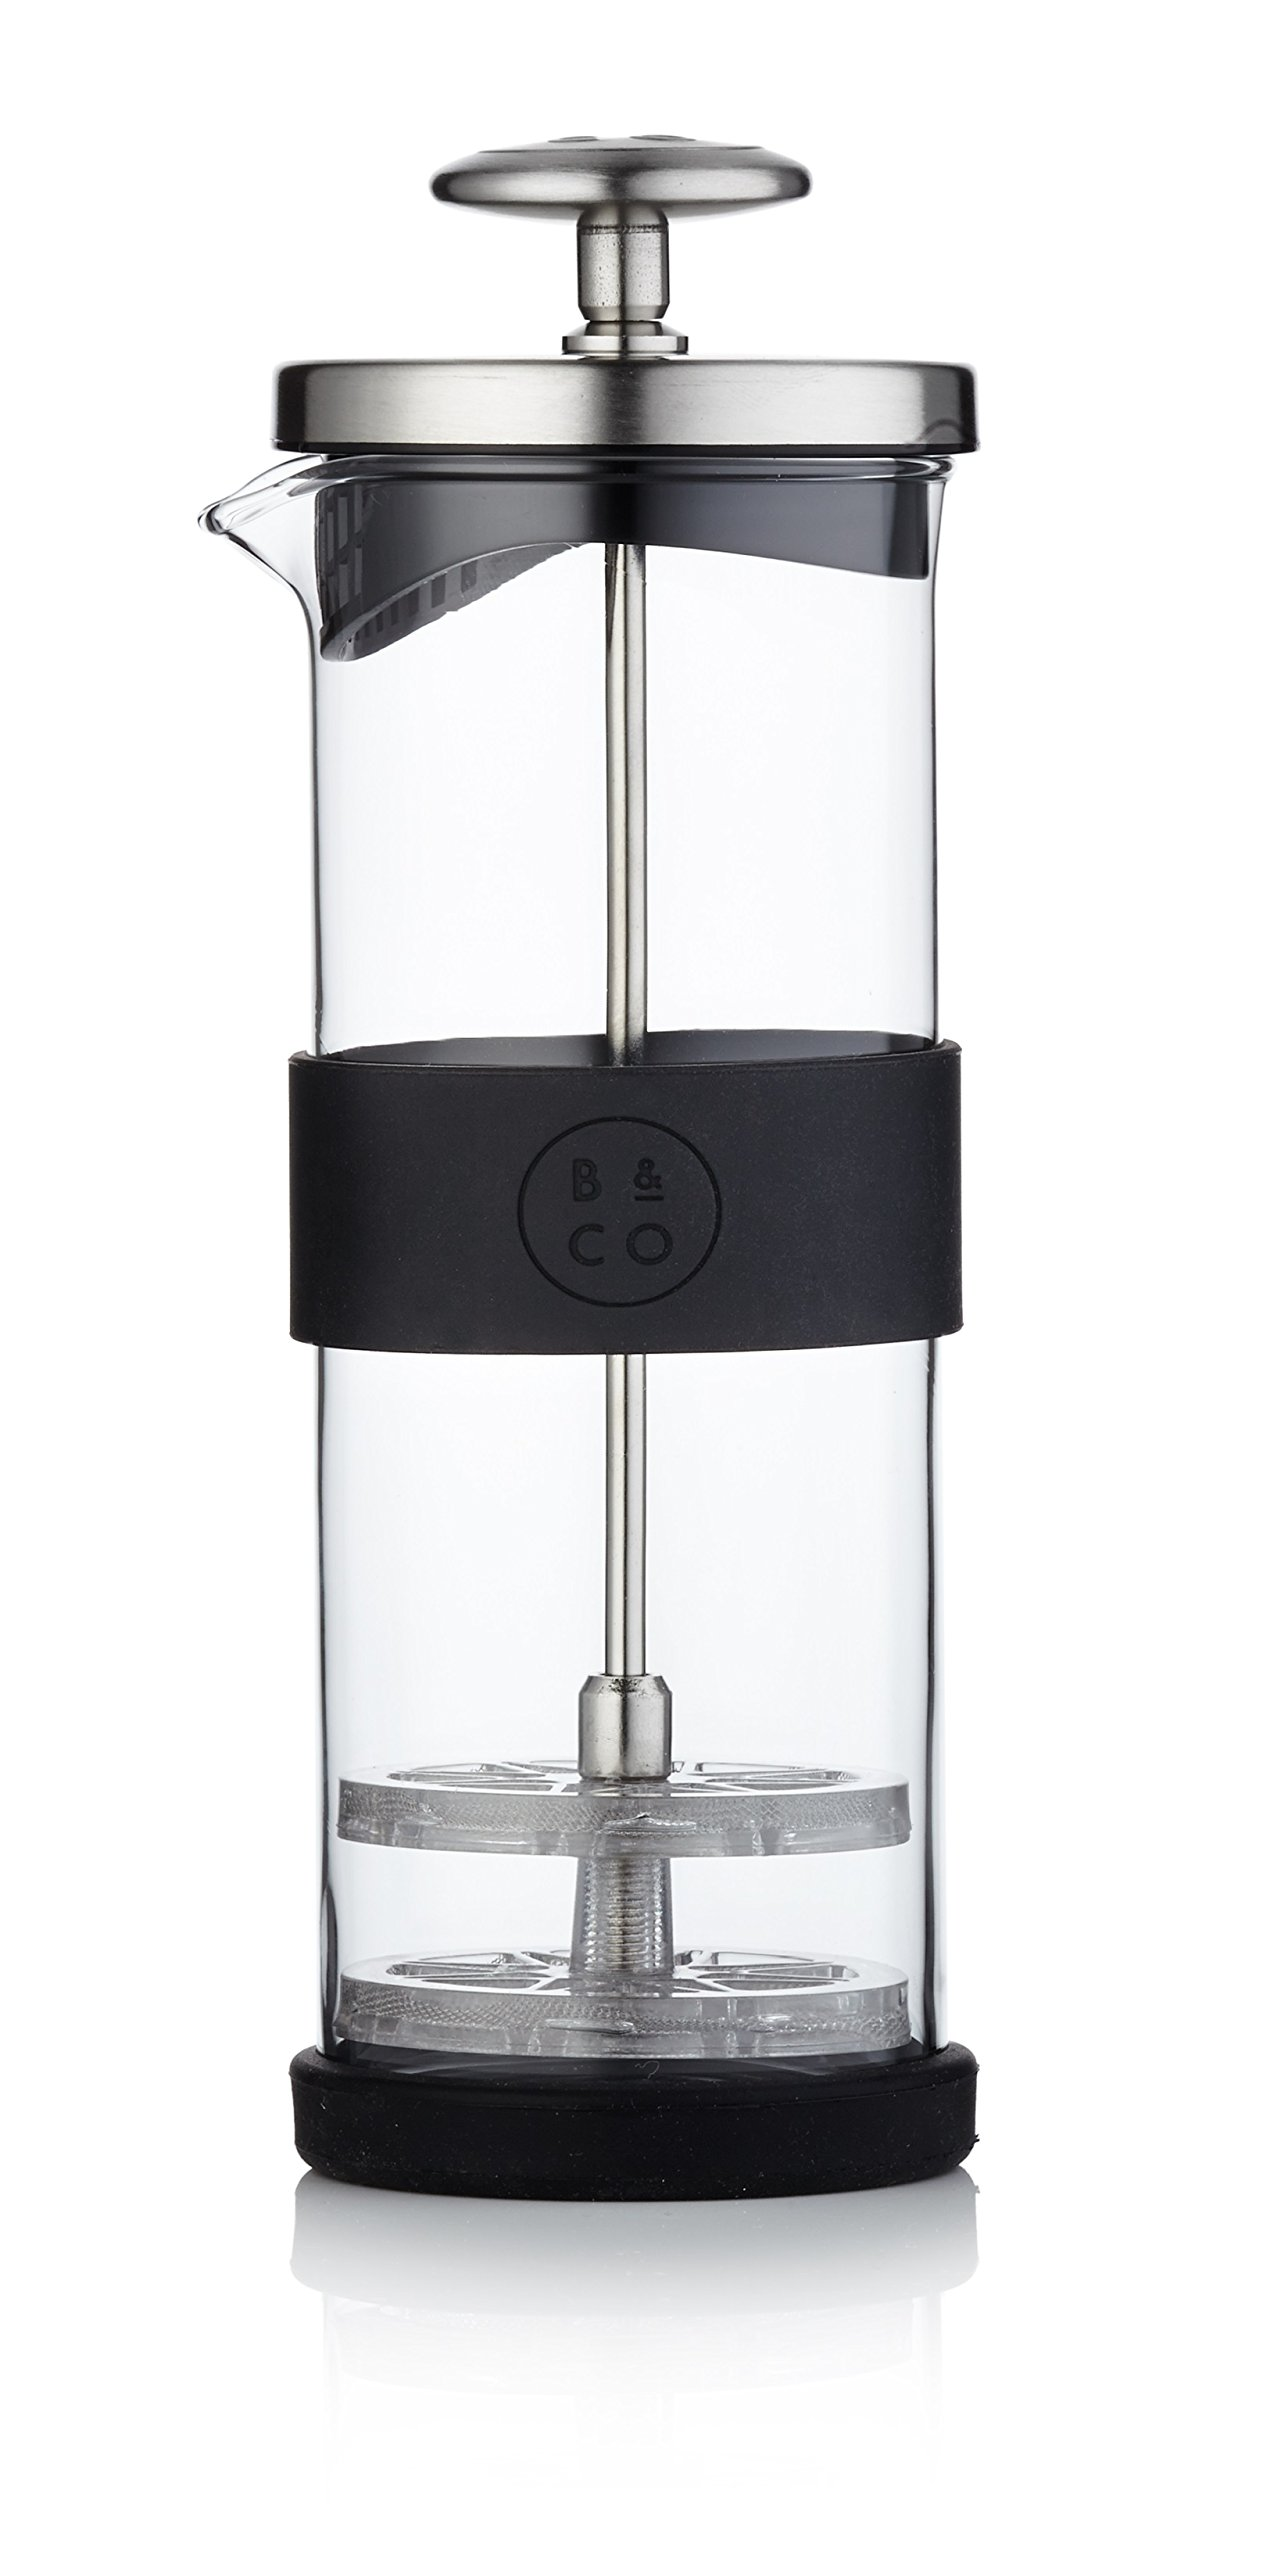 Barista & Co - Milk Frother with Silicone Grip - Electric Steel